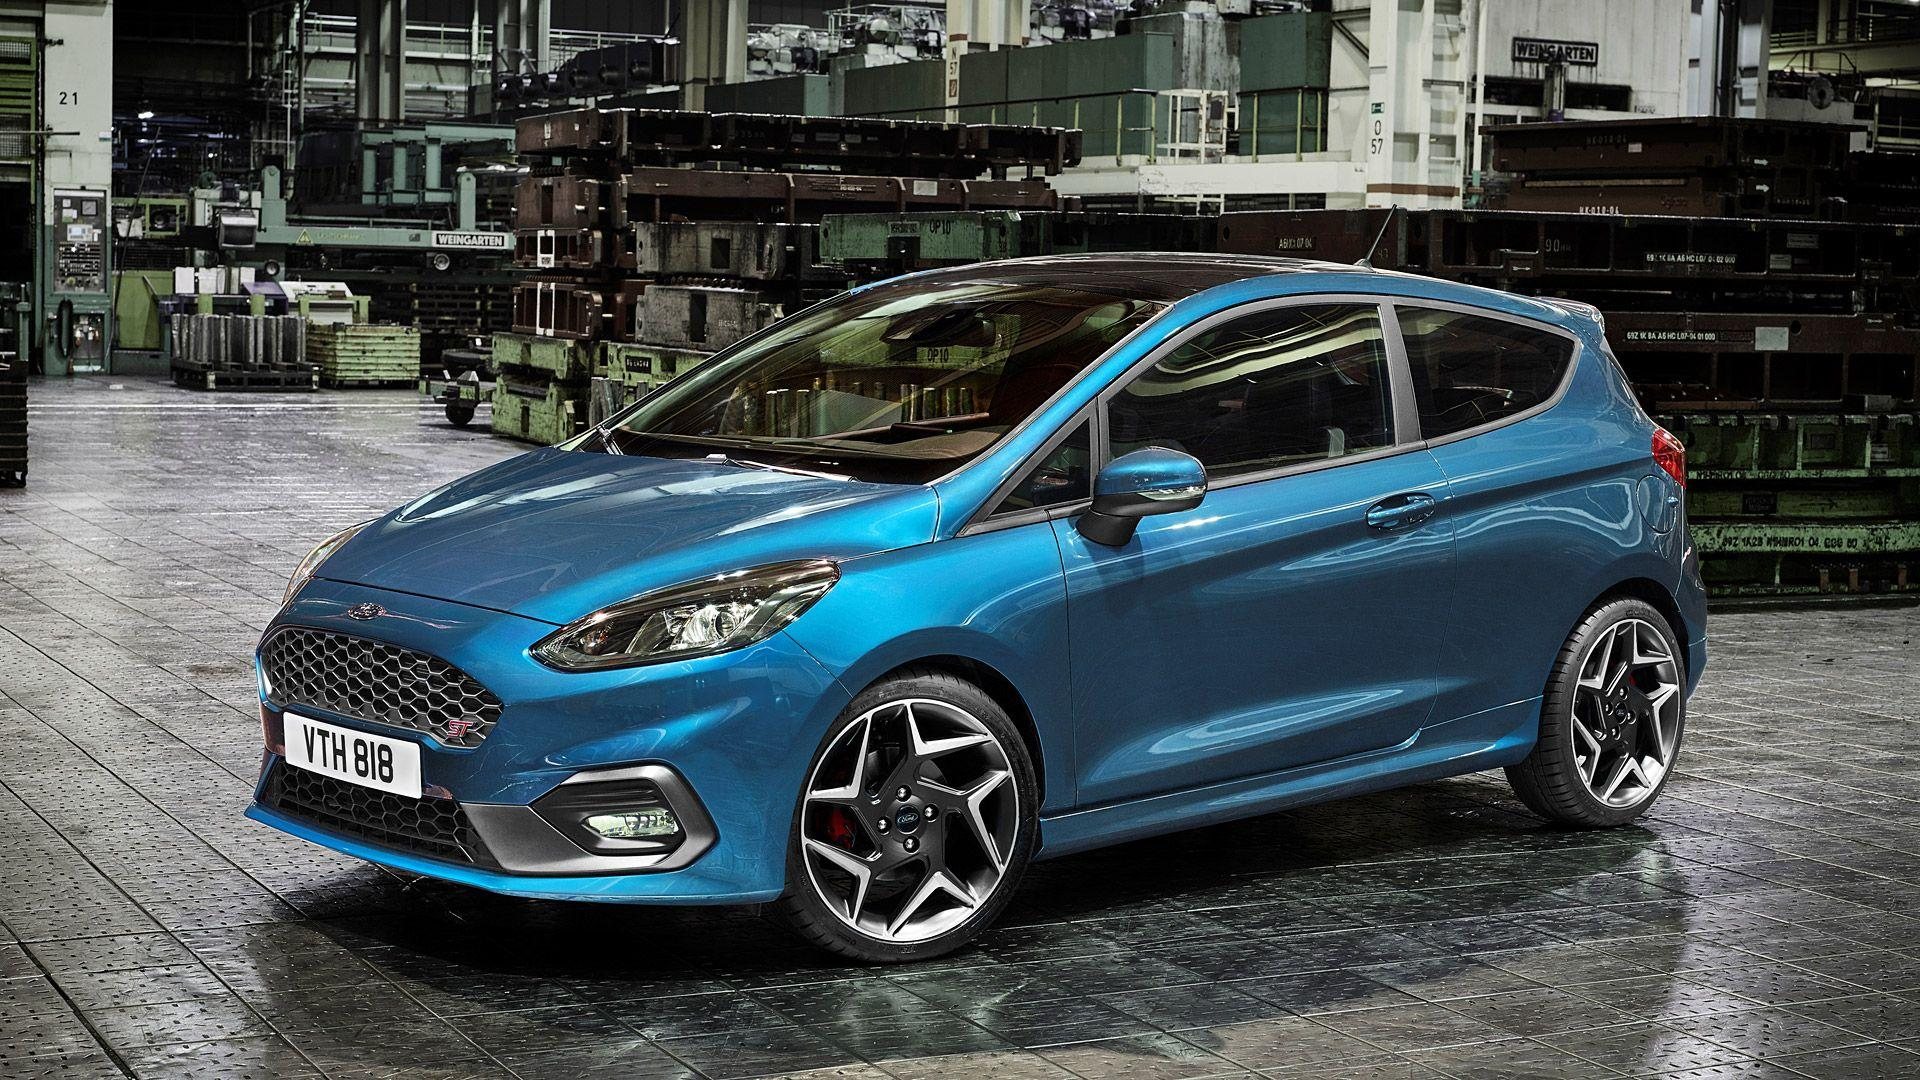 Ford Fiesta Wallpapers HD Photos, Wallpapers and other Image